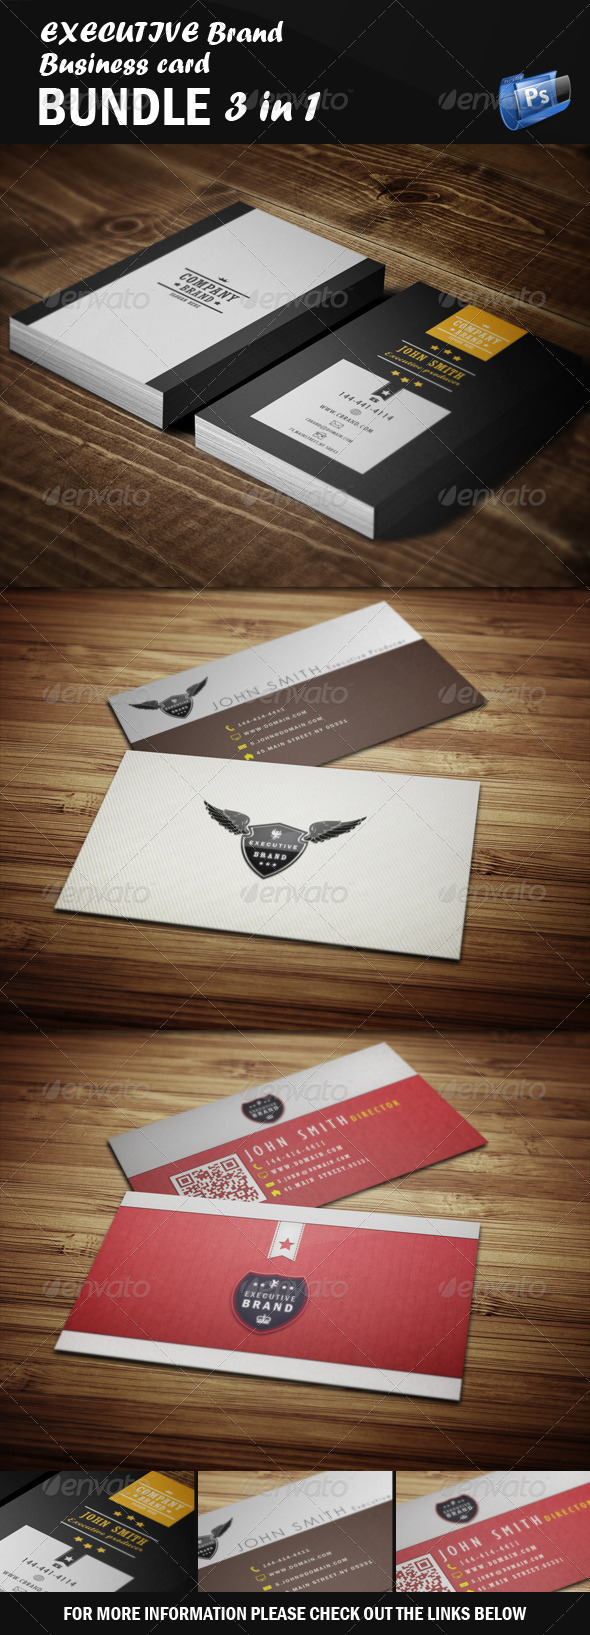 GraphicRiver Executive Business Card Bundle 3 in 1 5520867